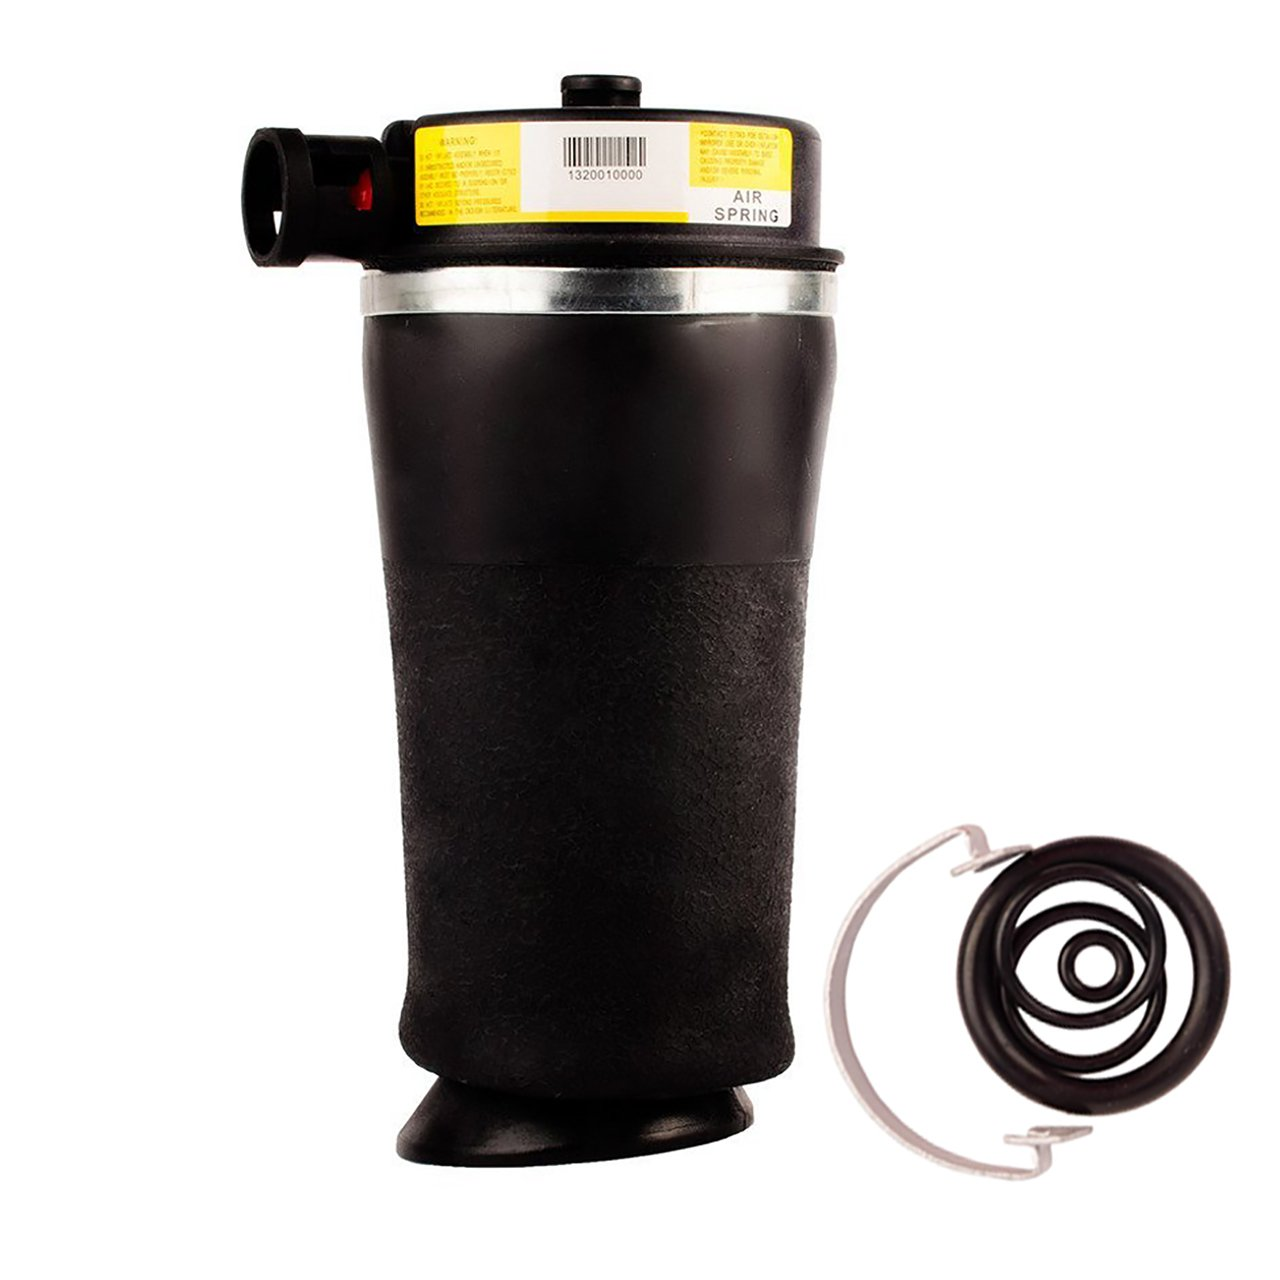 DEDC REAR Air Ride Suspension Air Spring Bag for Ford Expedition 2WD 1997-2002 Lincoln Navigator 2WD 1998-2002 Single